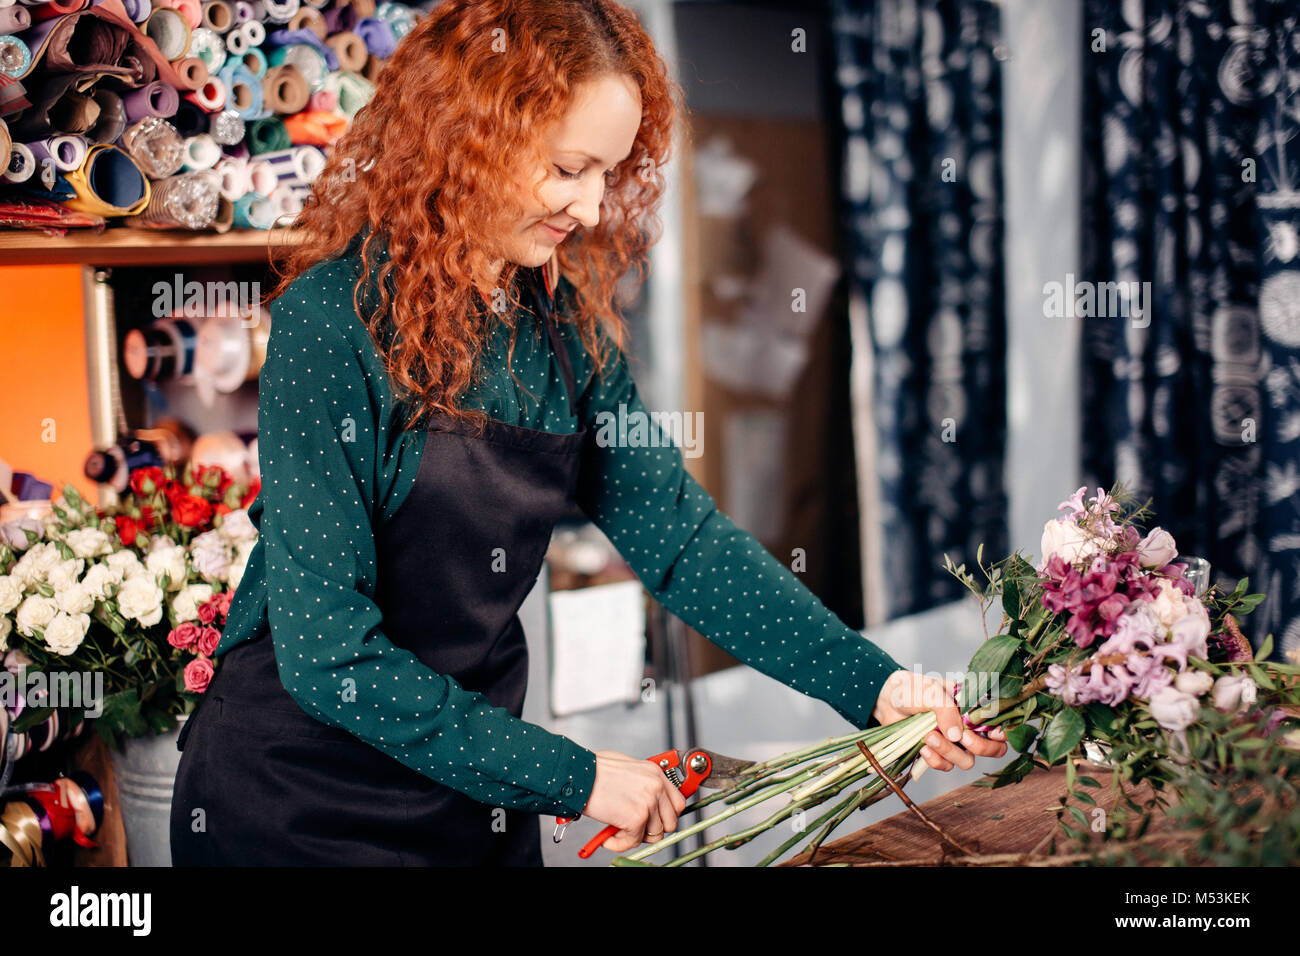 image of pretty girl with red, curly hair making up an attractive bouquet - Stock Image